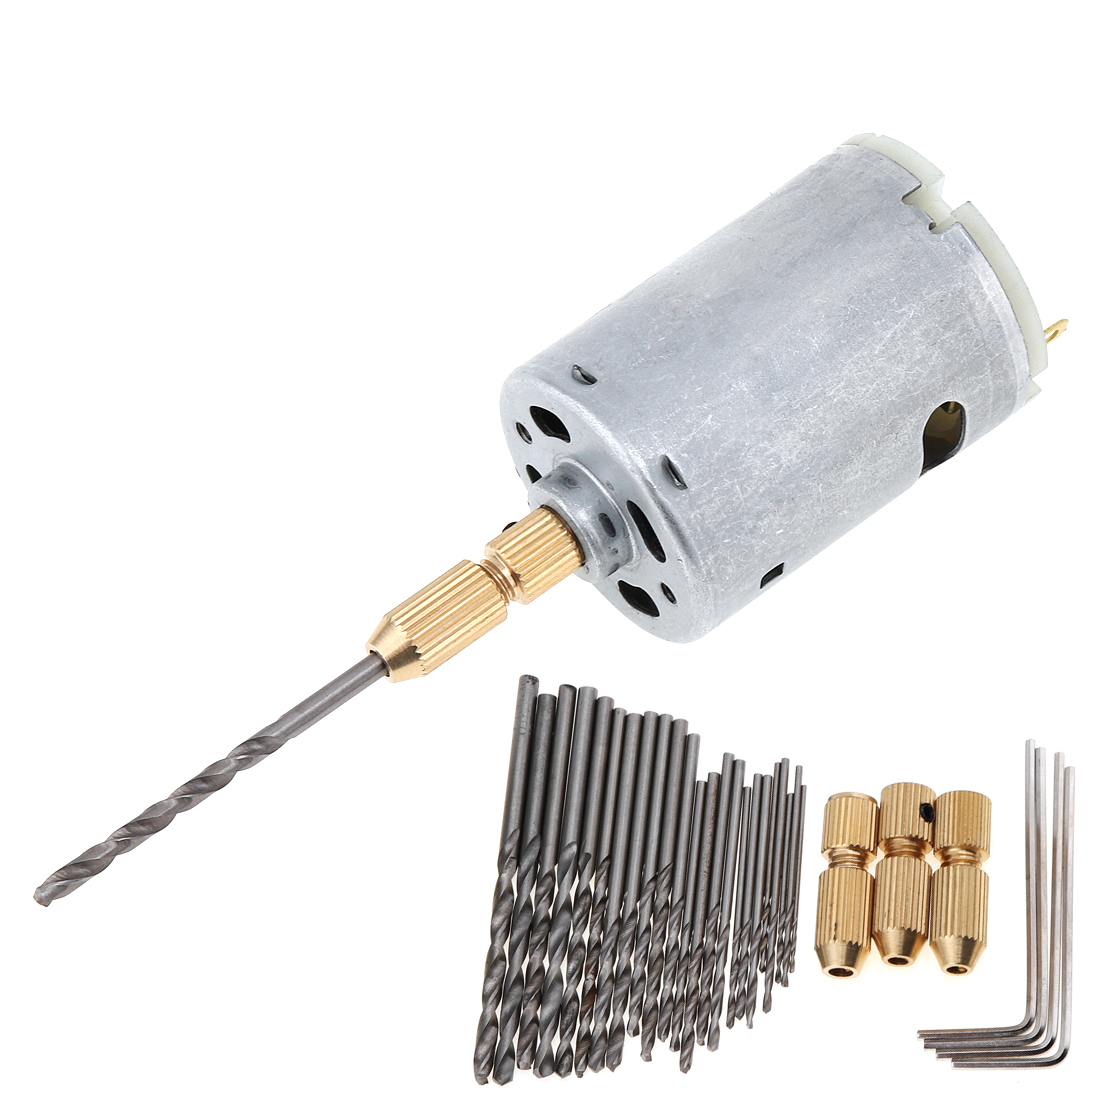 NEW 12V DC Mini Electric Motor DIY Hand Drill with 3pcs Brass Drill Collet 24pcs Micro Twist Drill and 4pcs Hexagon Screw Wrench new adjustable dc 3 24v 2a adapter power supply motor speed controller with eu plug for electric hand drill